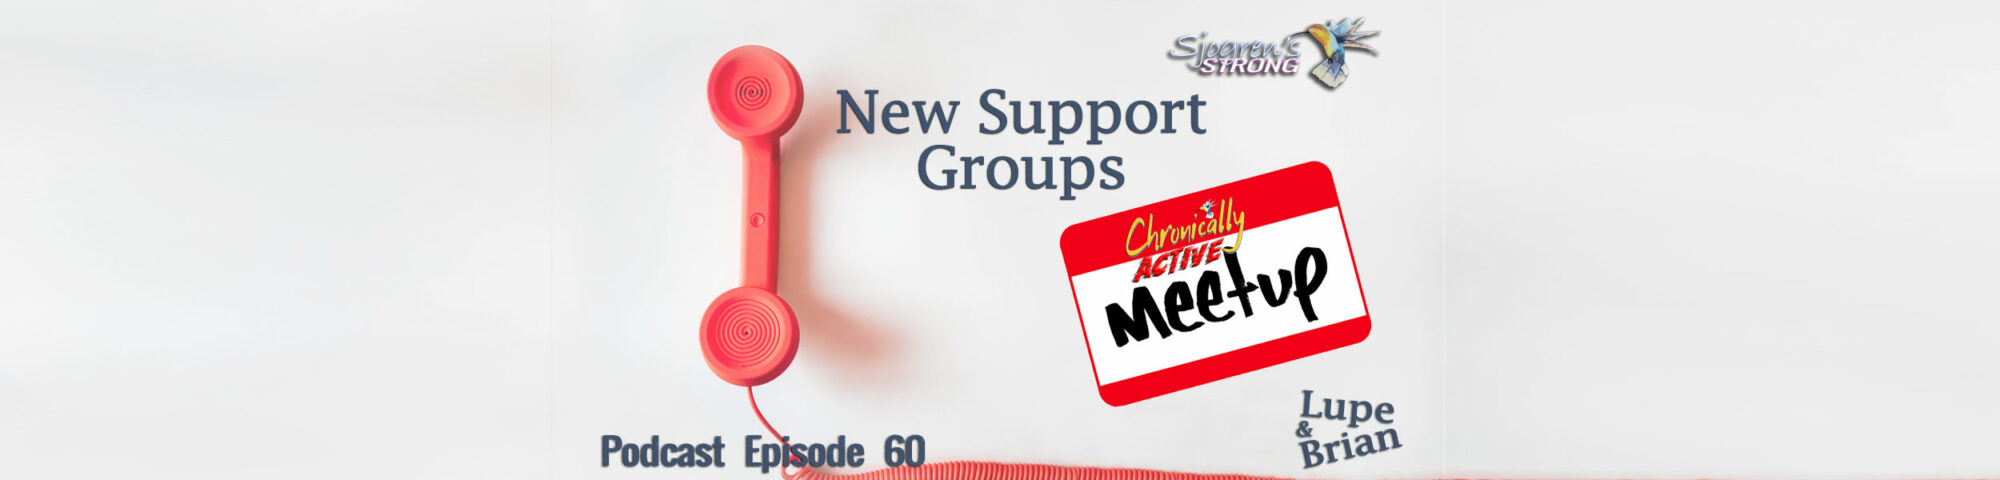 New Support Groups